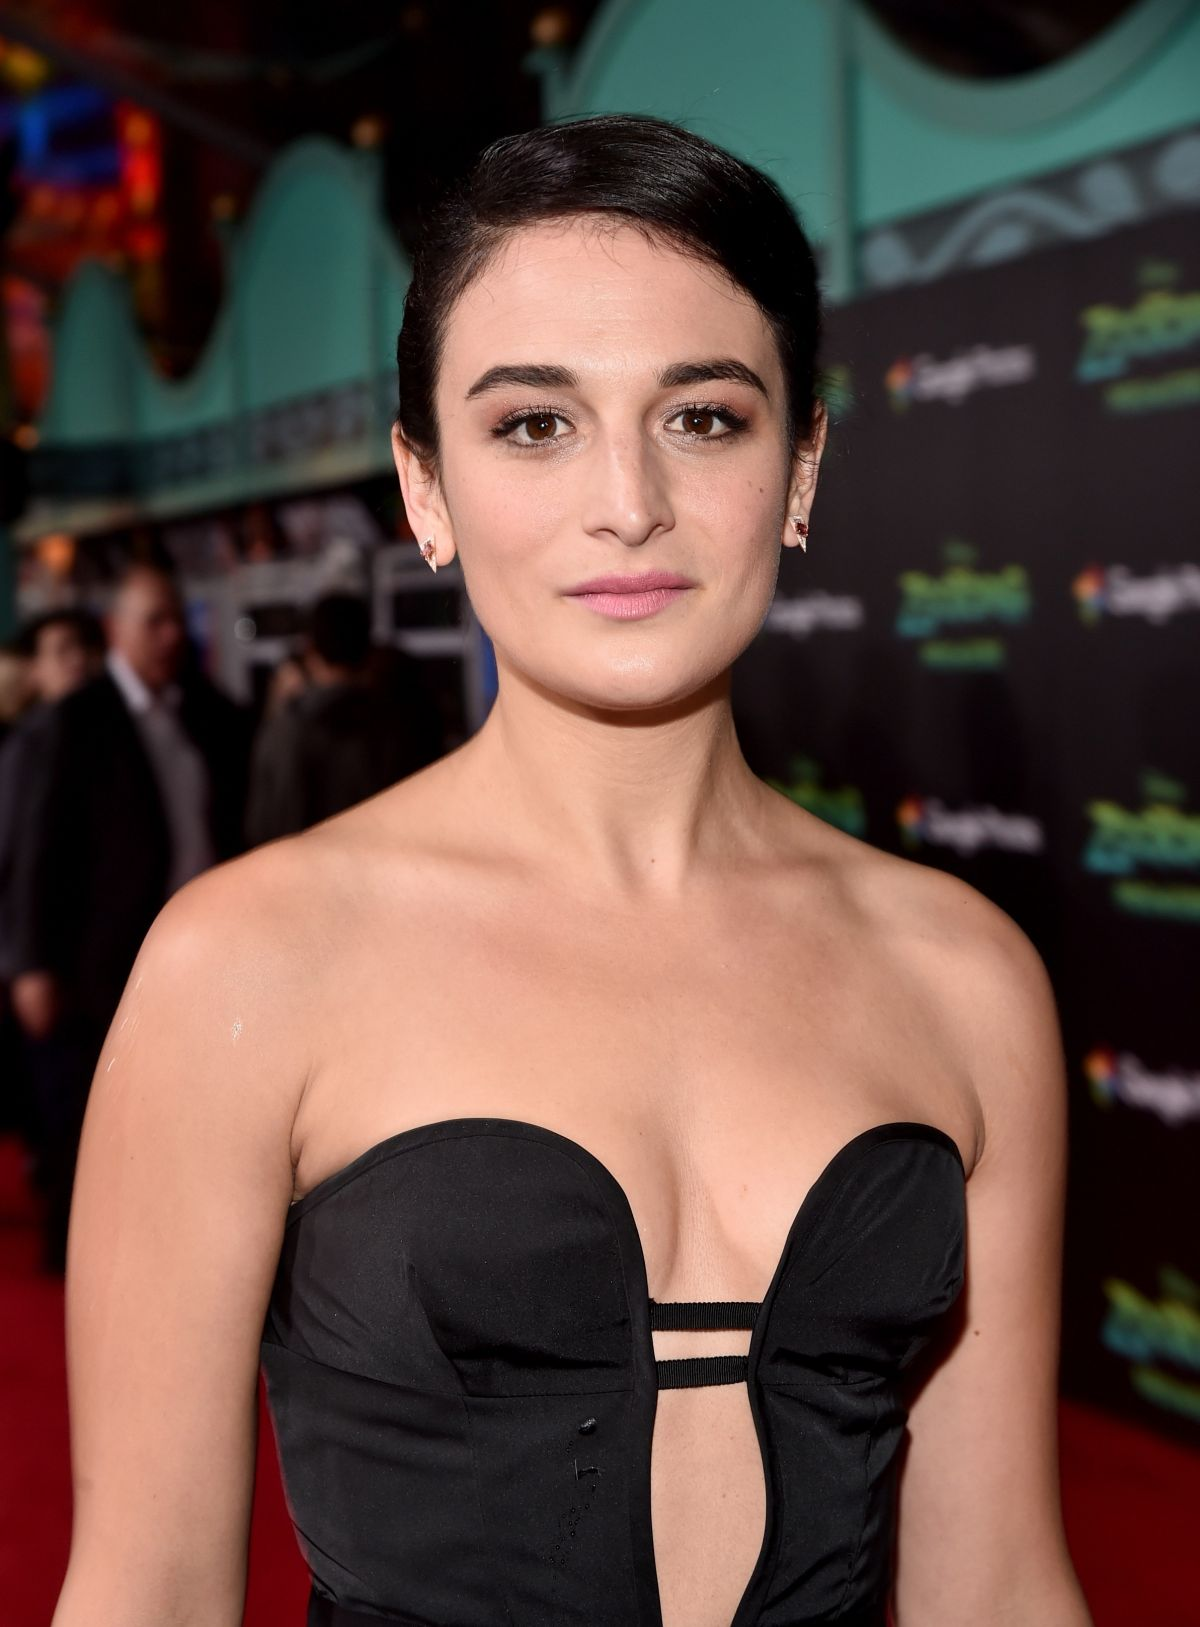 JENNY SLATE at Zootopia Premiere in Hollywood 02/17/2016